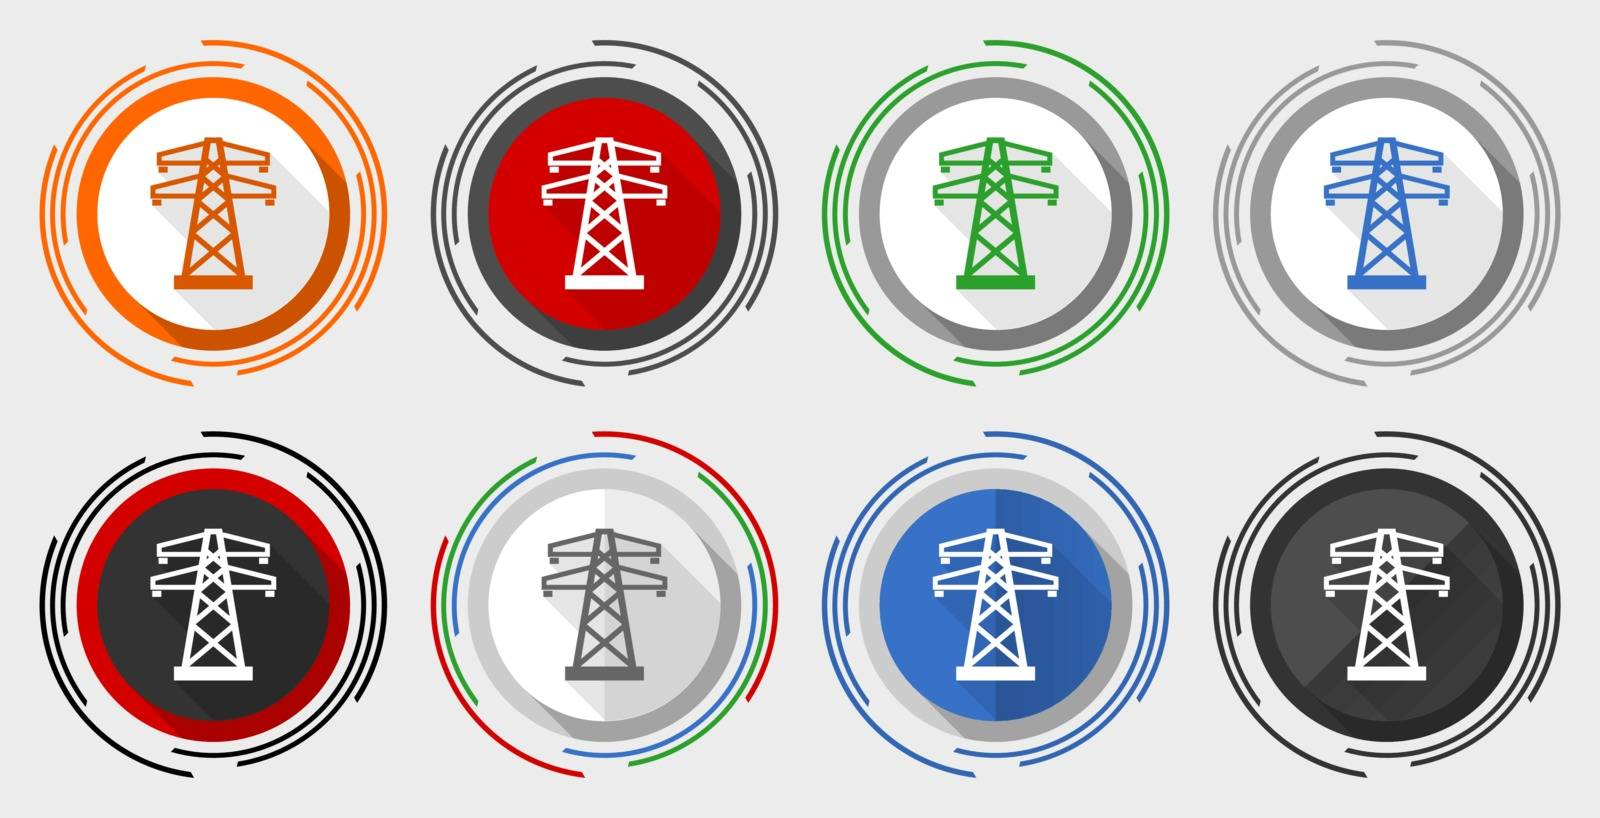 Power, energy tower modern design flat graphic in 8 options for web design and mobile applications by alexwhite